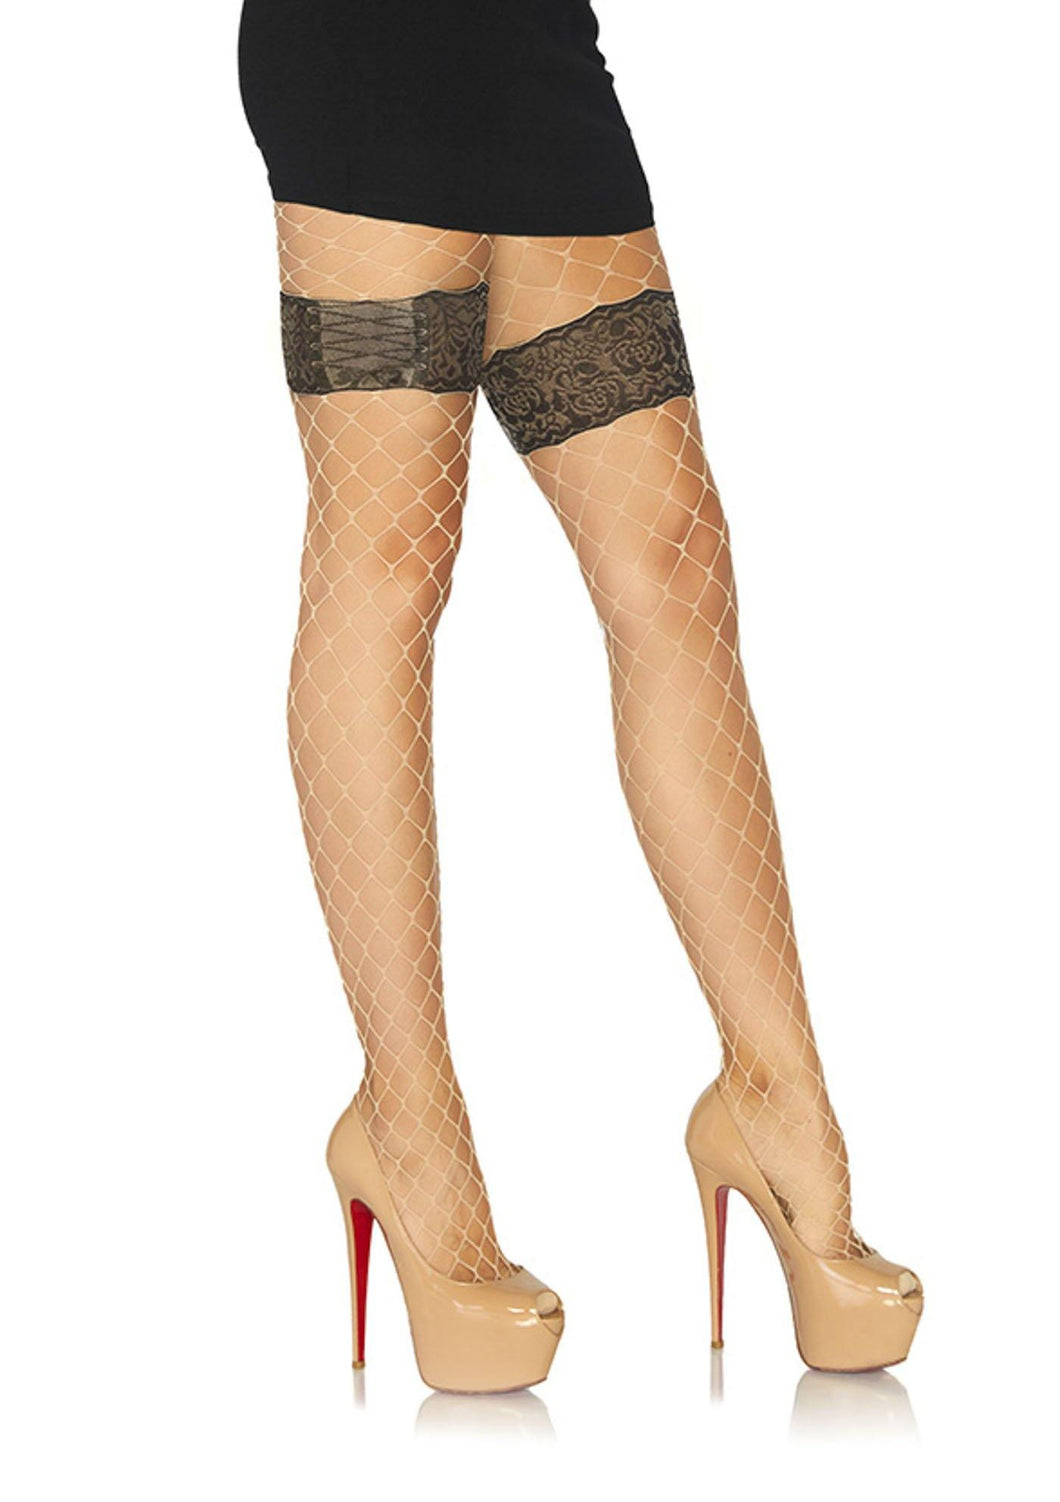 Diamond Net Fishnet Tights Faux Thigh Garter - Amore Lingerie